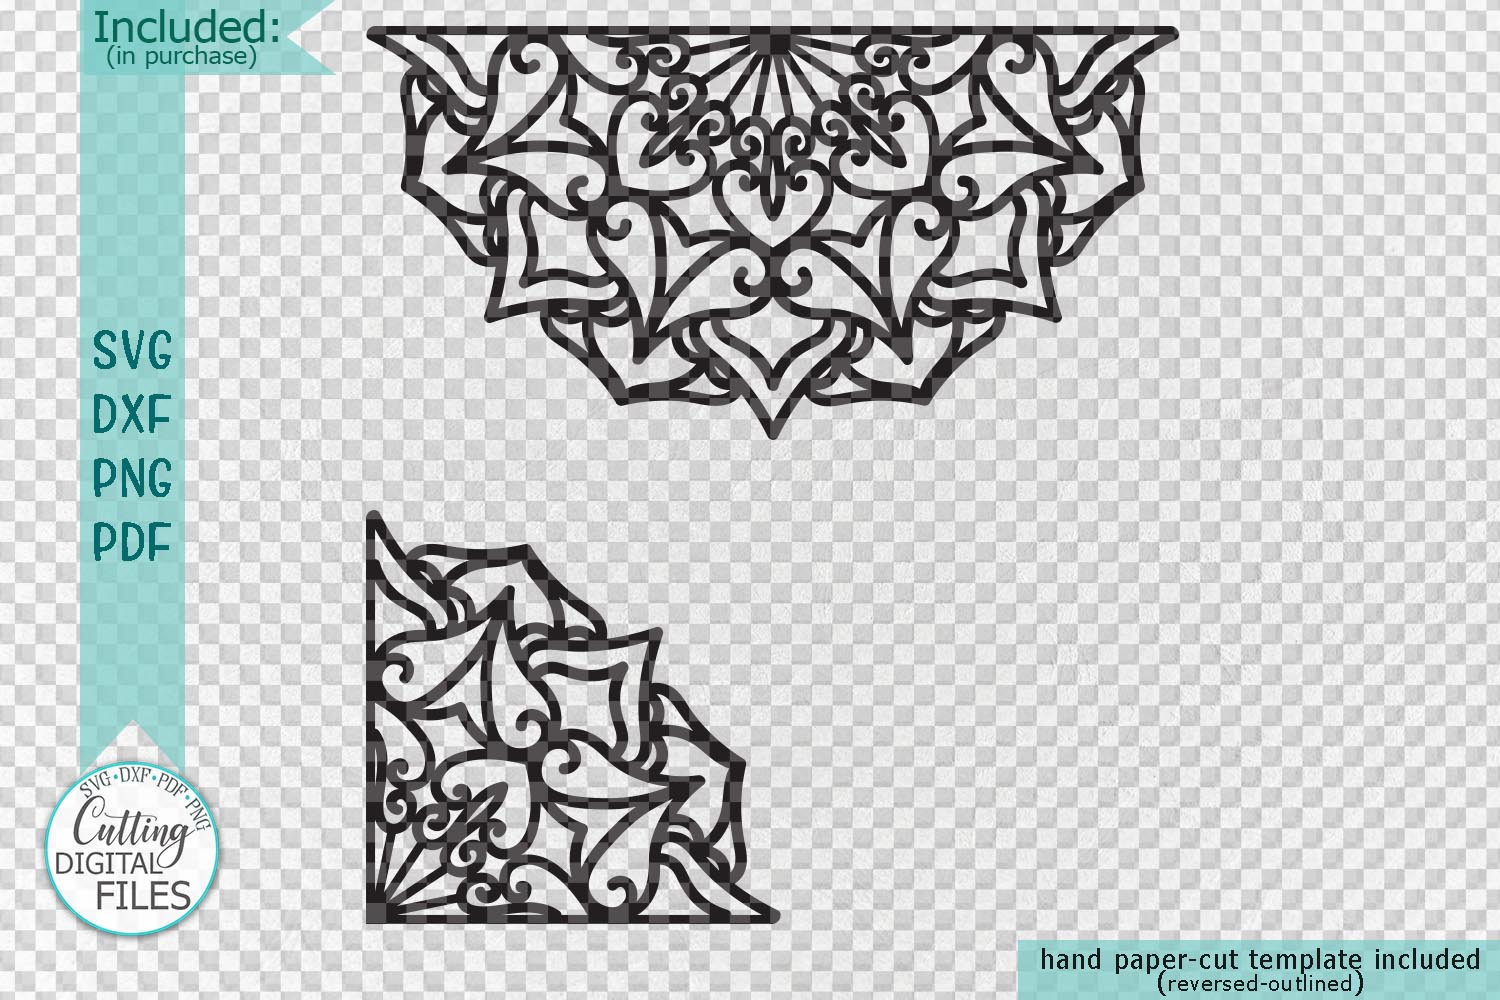 Mandala set corner half border plotter cut svg dxf templates example image 3